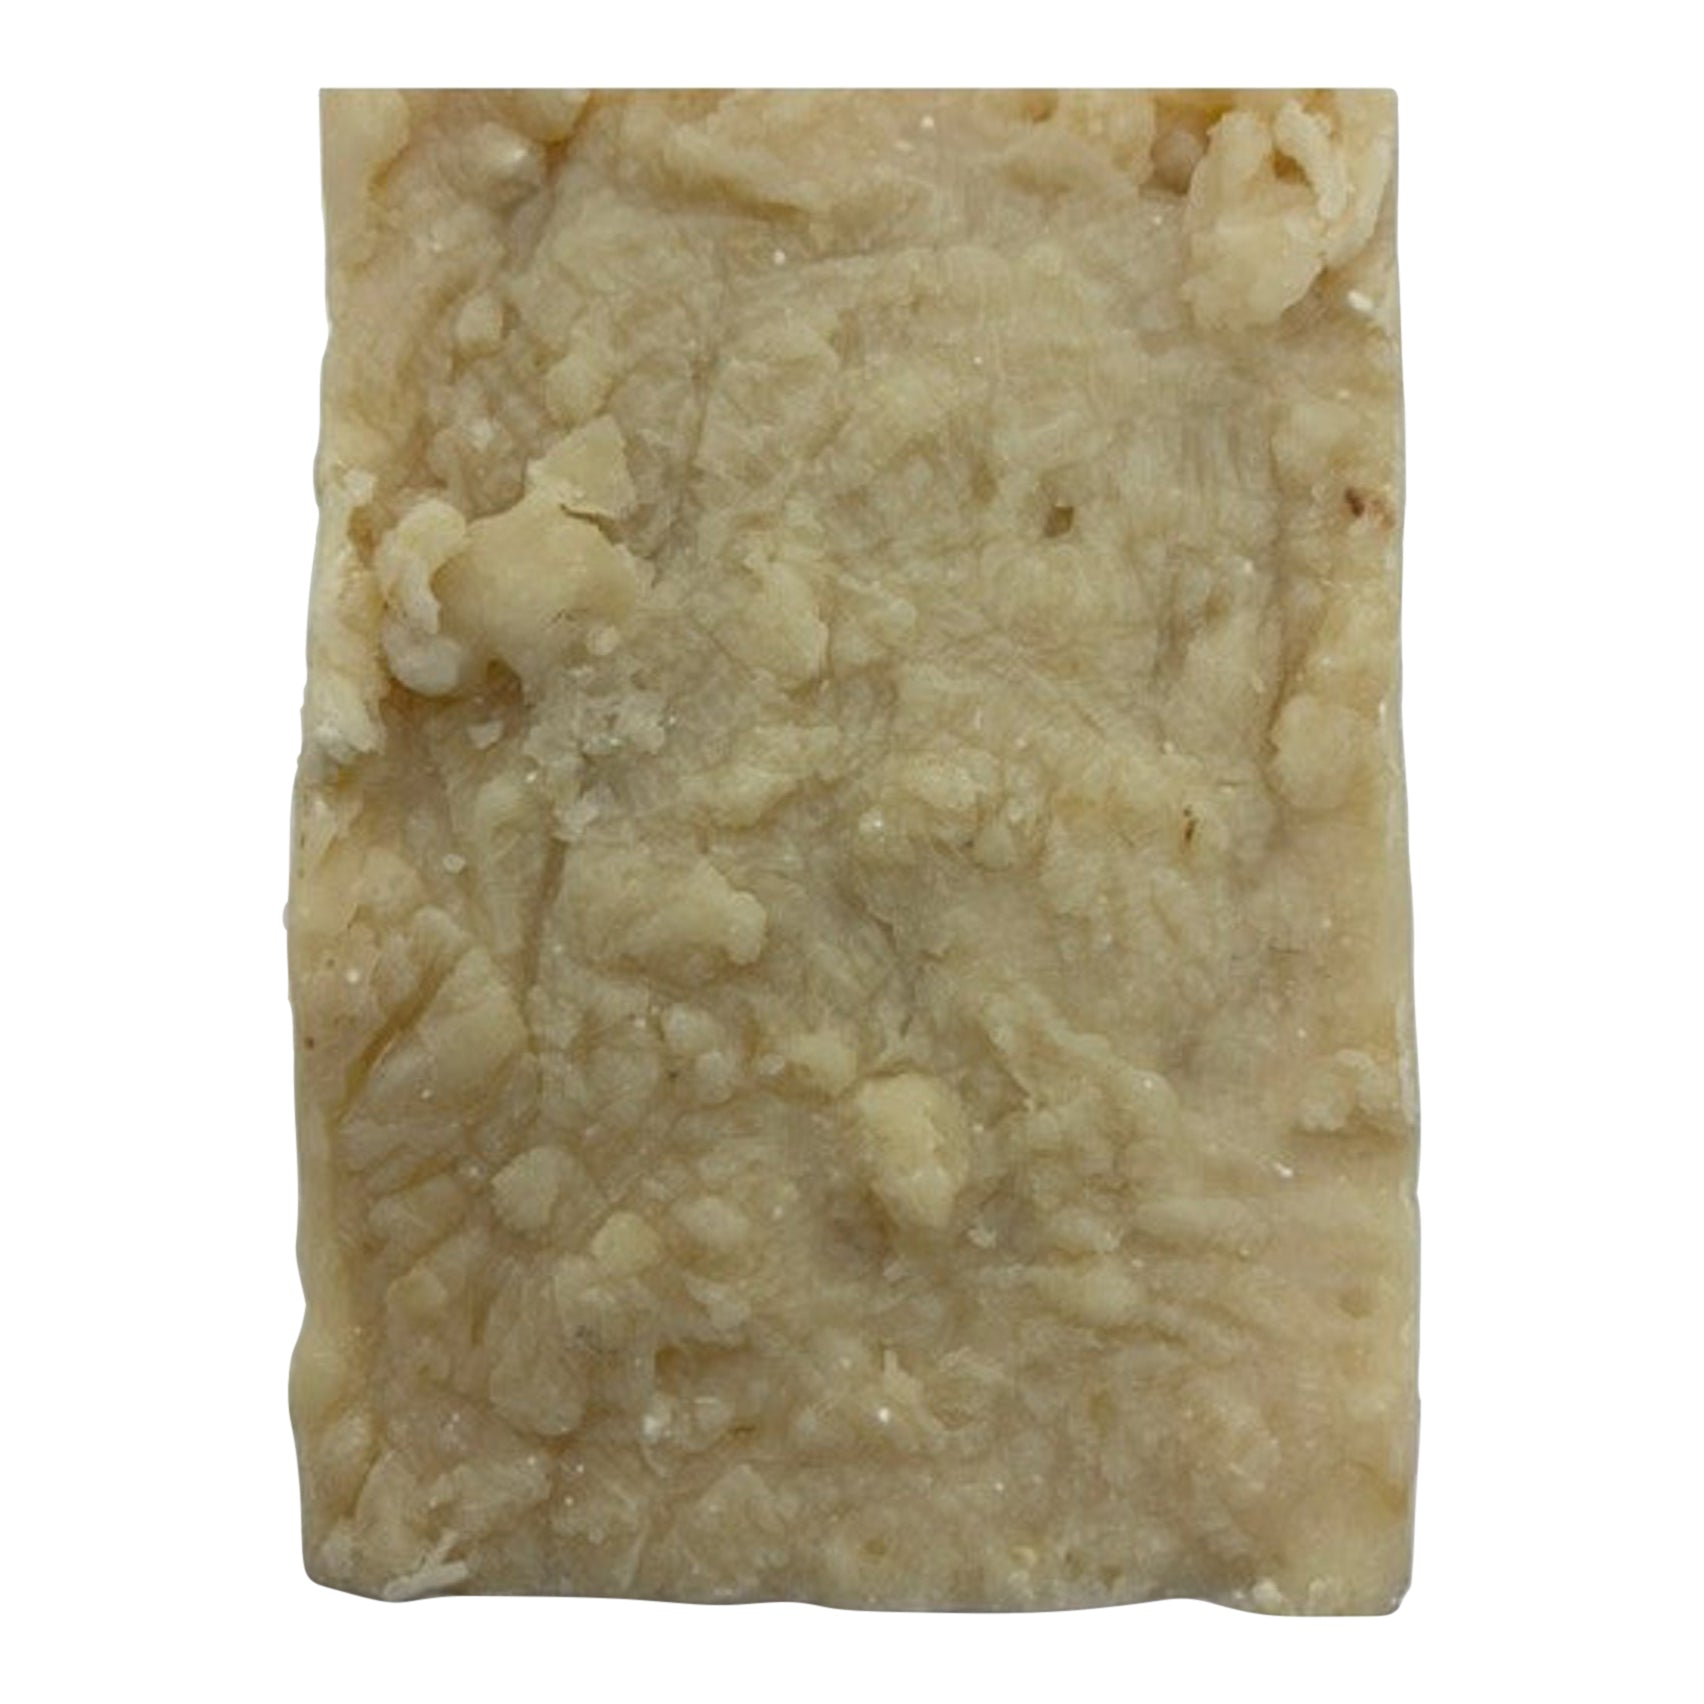 Soap 7oz *Magnesium Baby Me Soap* Organic Shea Butter - Goat Milk - Honey - MSM - Oatmeal - Face & Body Soap Sensitive Normal skin. Helps with Acne! See Before and After Pictures!